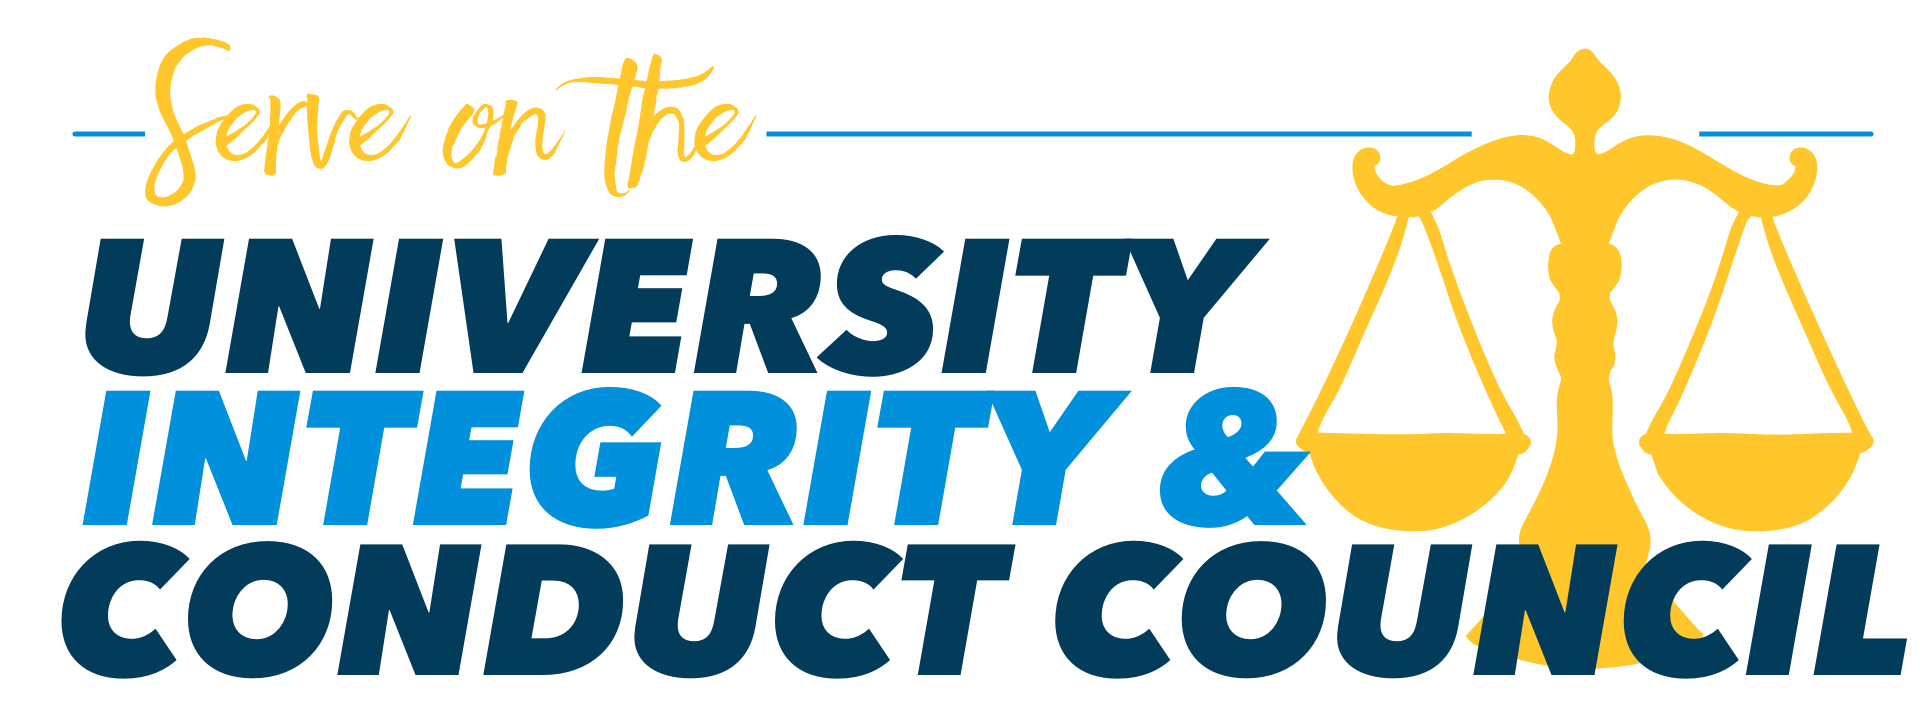 Serve on the University Integrity and Conduct Council